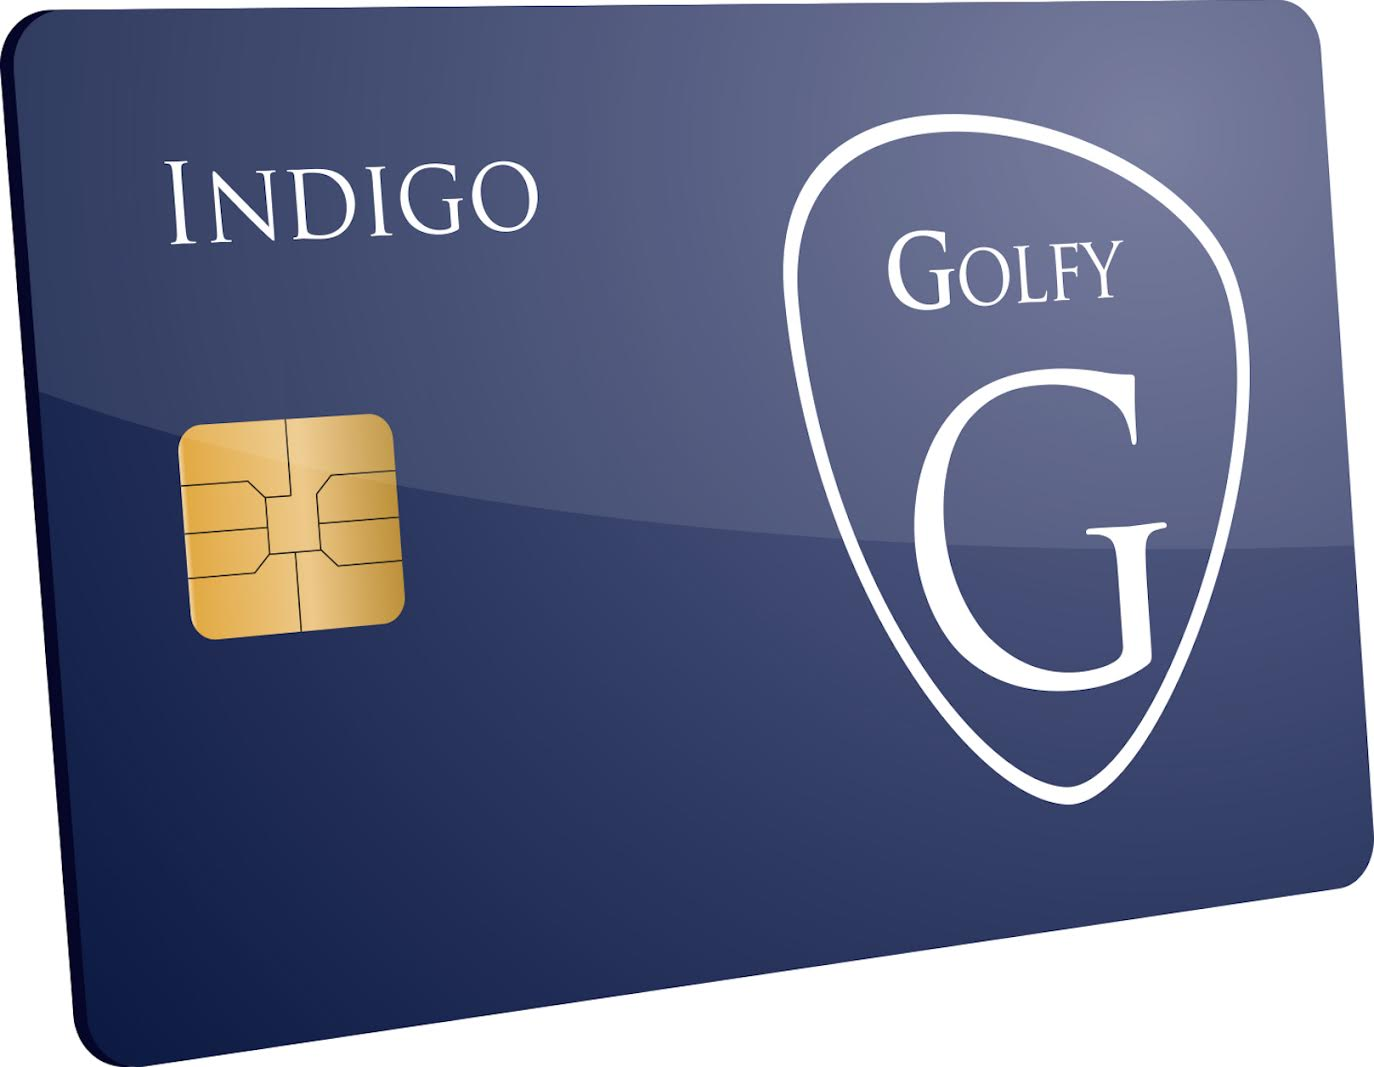 Play cheaper rounds of golf at some exceptional European golf courses with a Golfy card